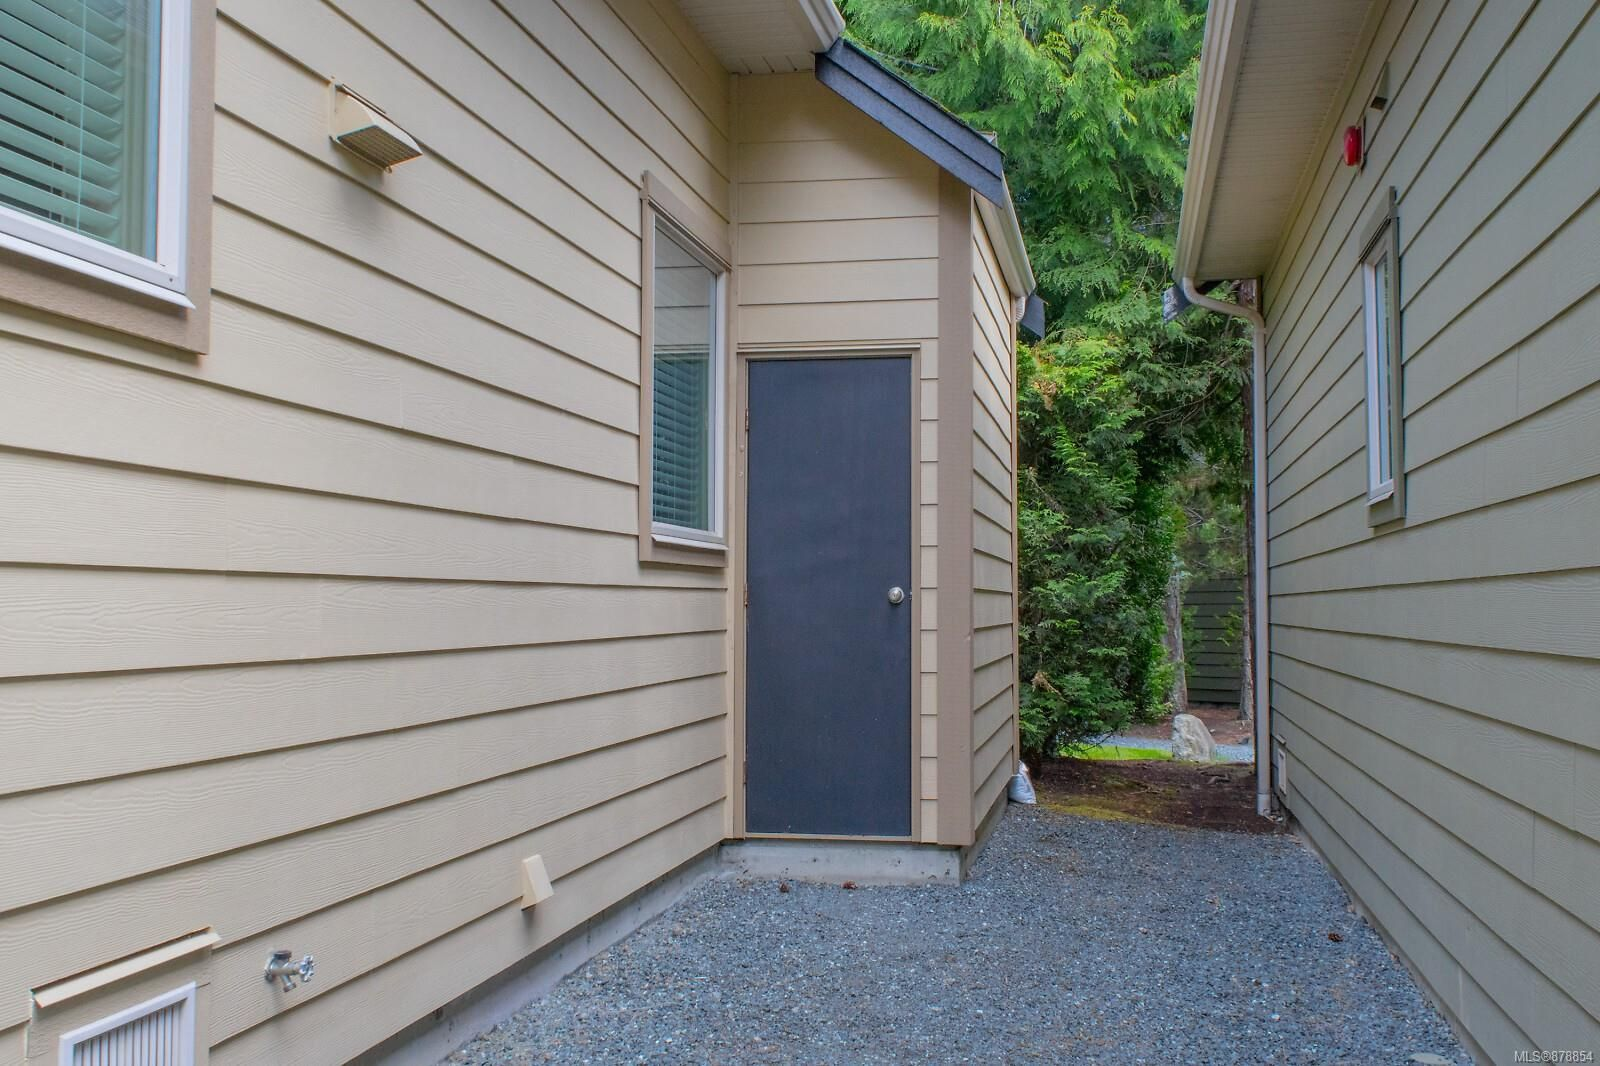 Photo 16: Photos: 223 1130 Resort Dr in : PQ Parksville Row/Townhouse for sale (Parksville/Qualicum)  : MLS®# 878854